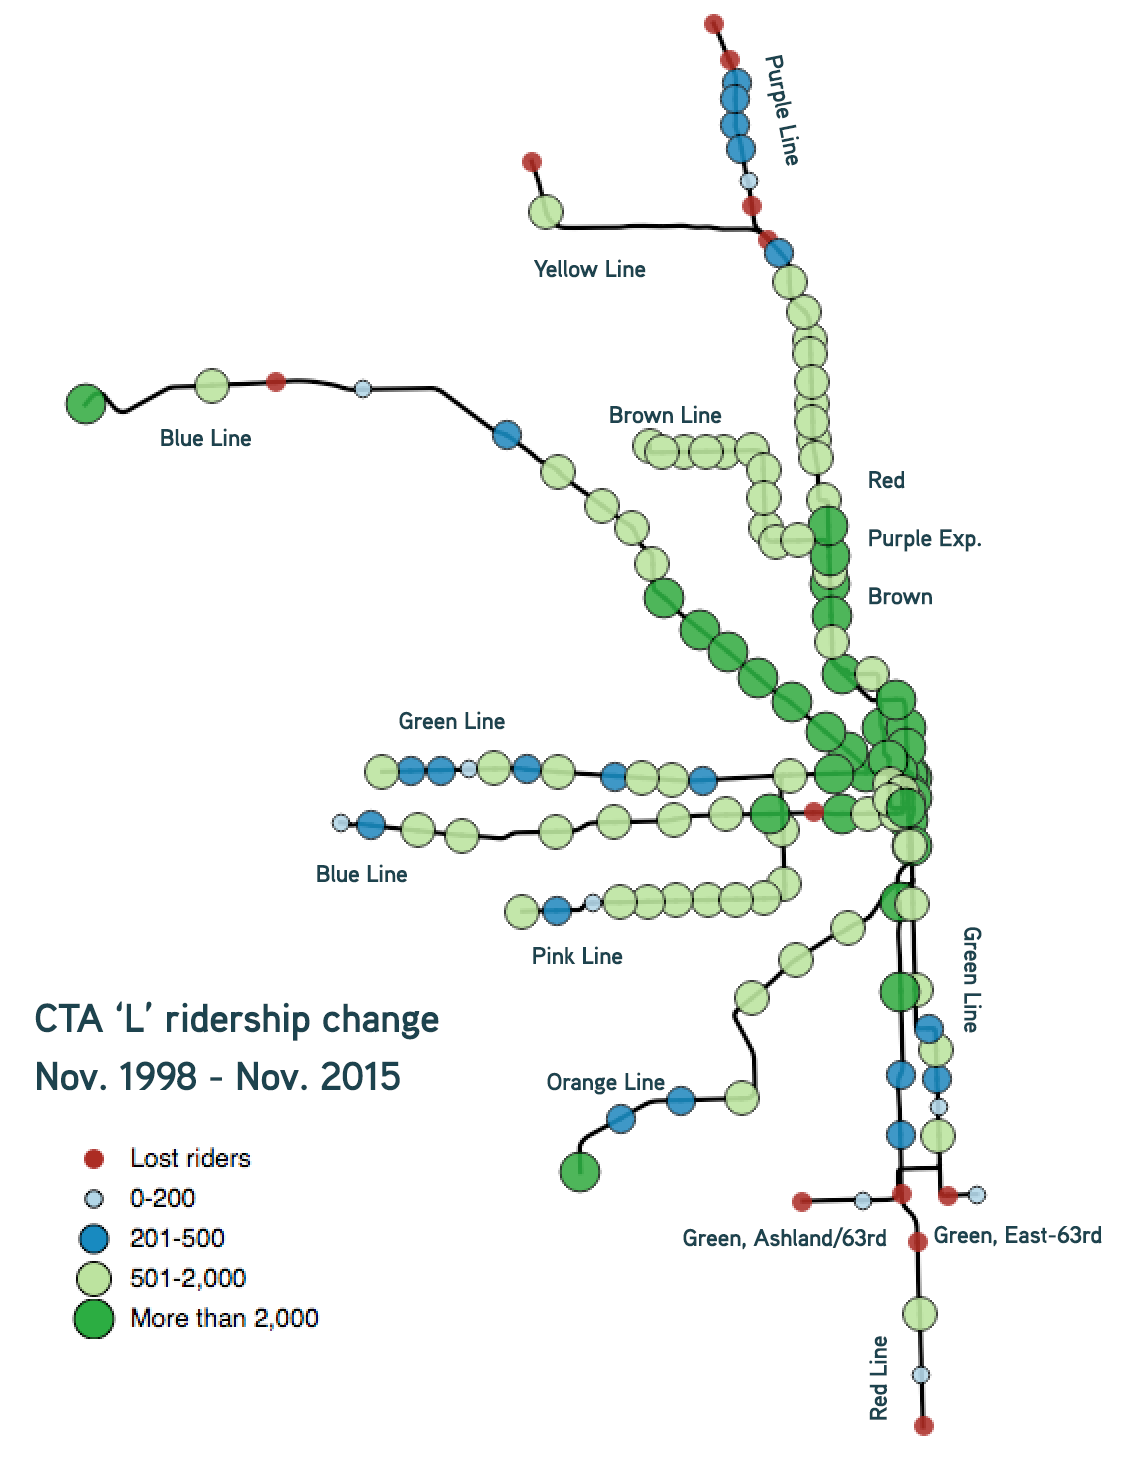 The most ridership growth on the CTA has been on the Blue Line, in the central business district, and on the north side of Chicago. Map design adapted from an earlier version by Yonah Freemark.